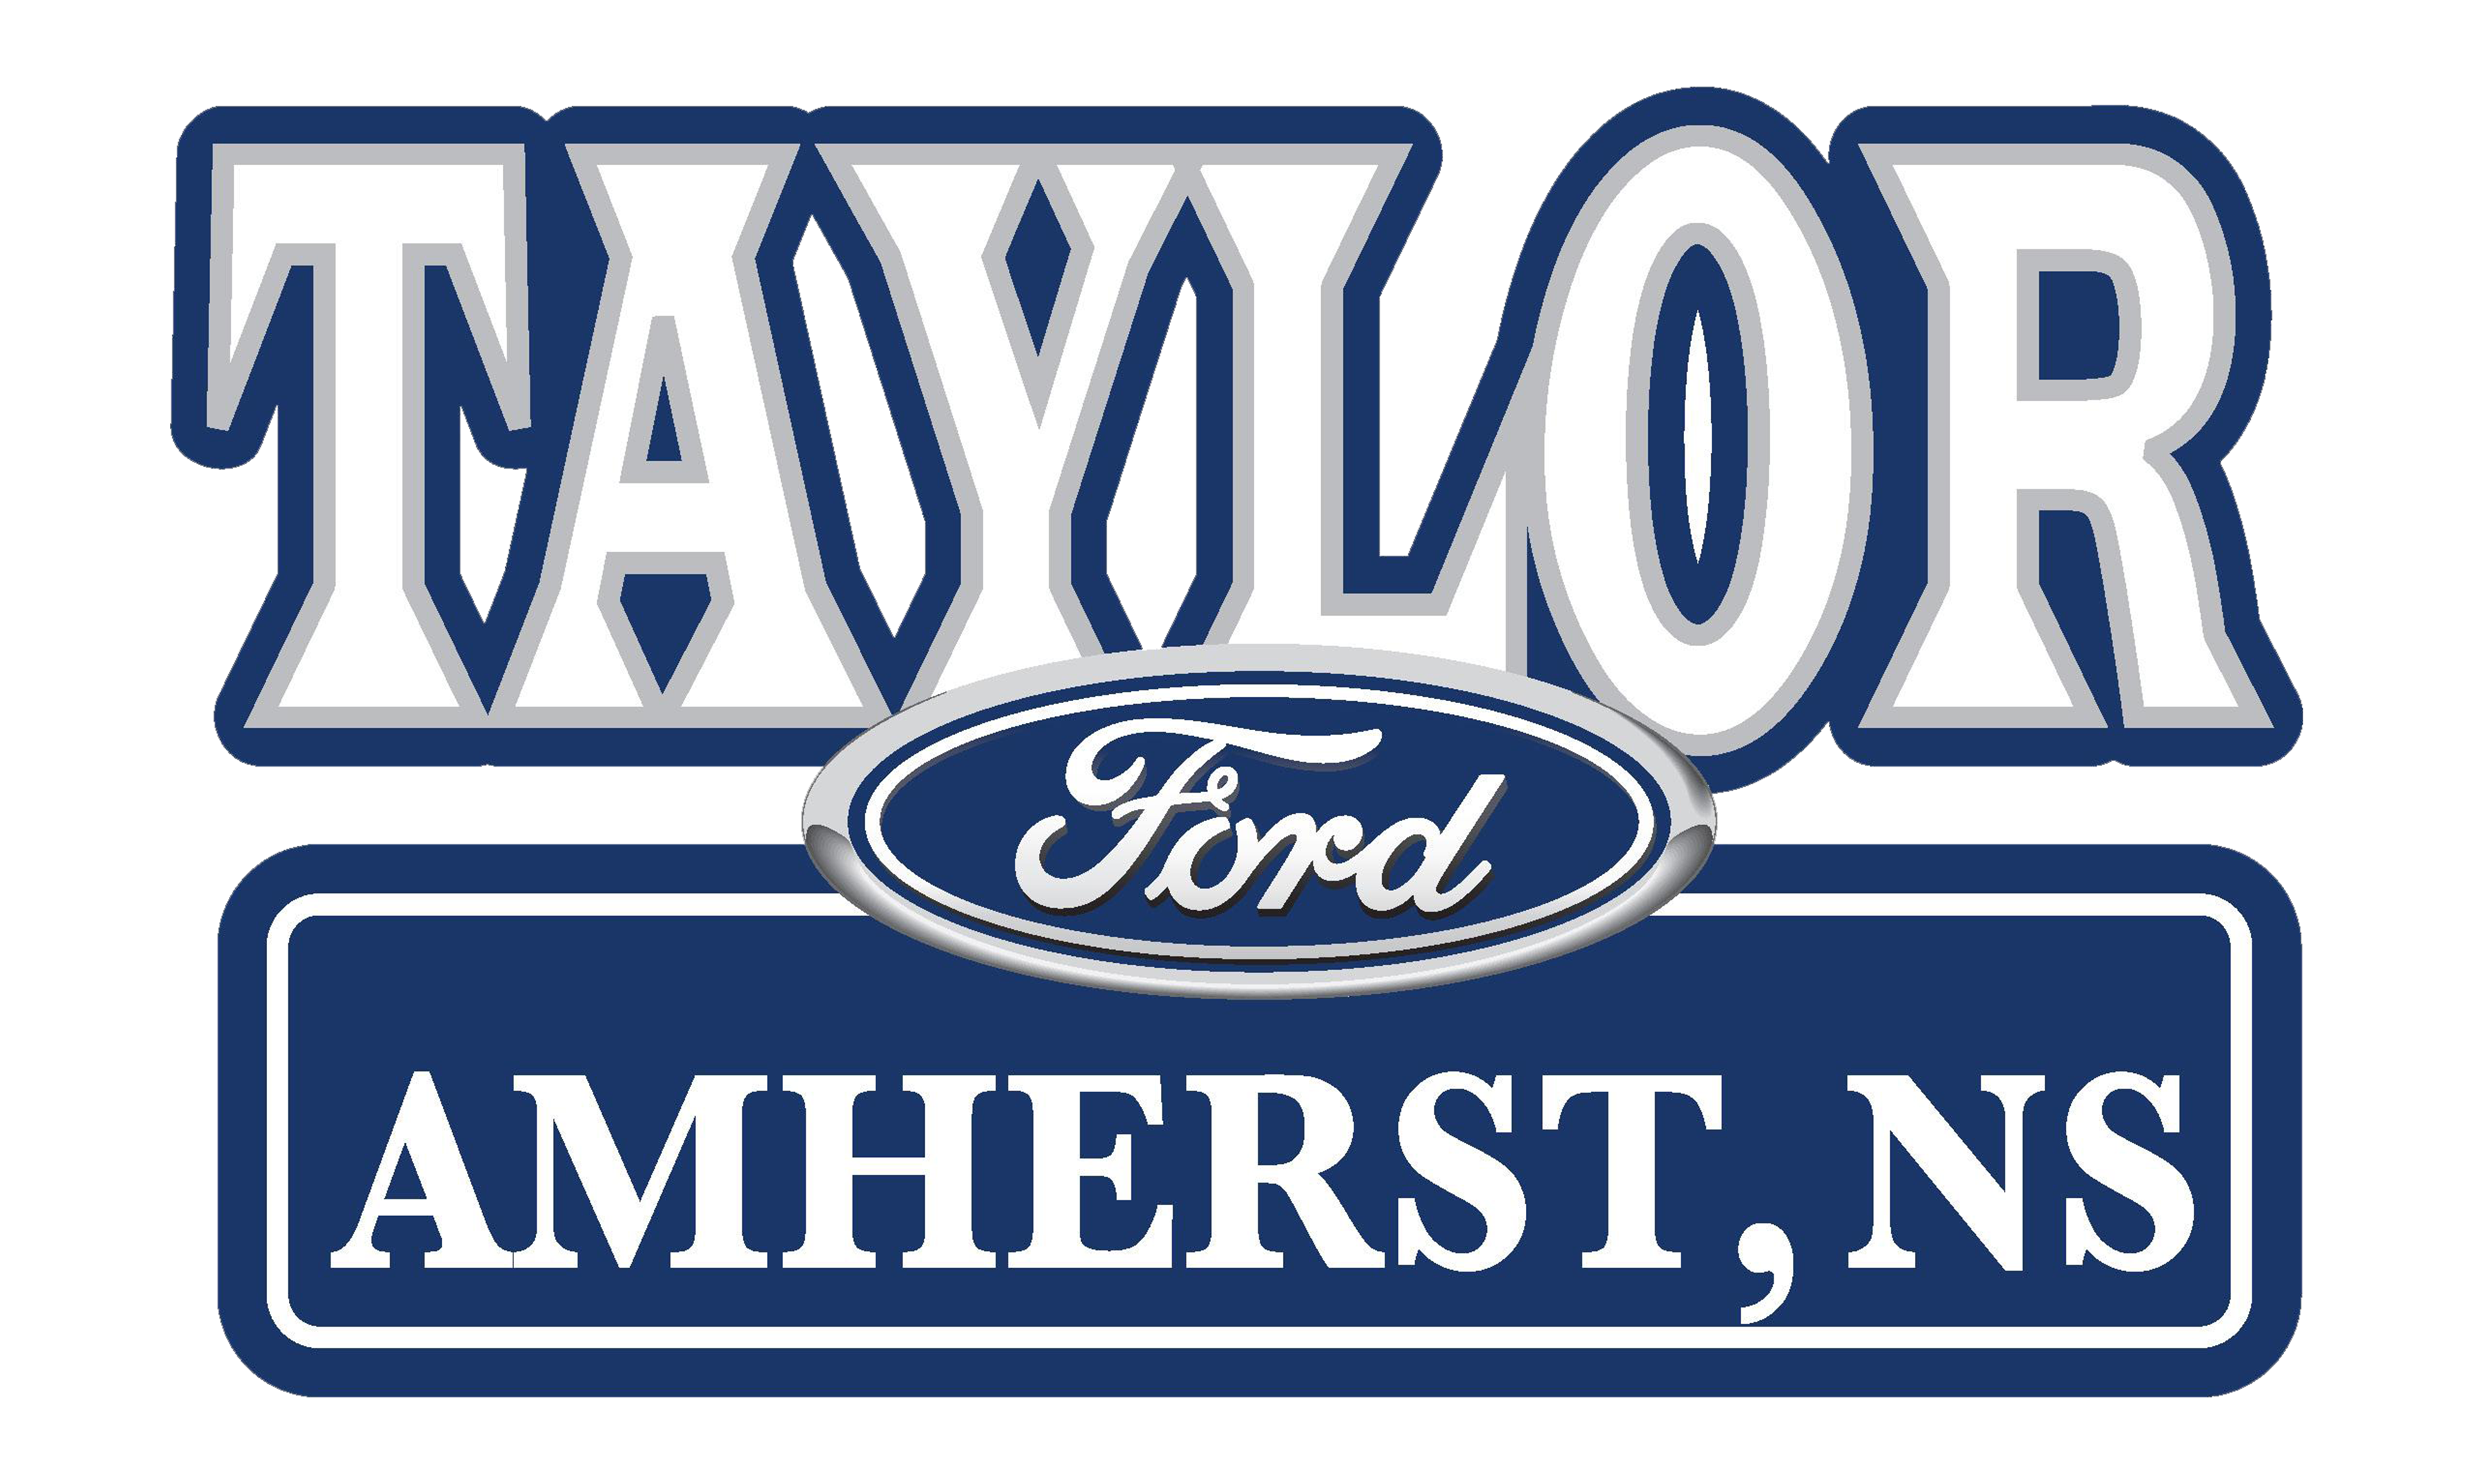 Taylor Ford Amherst